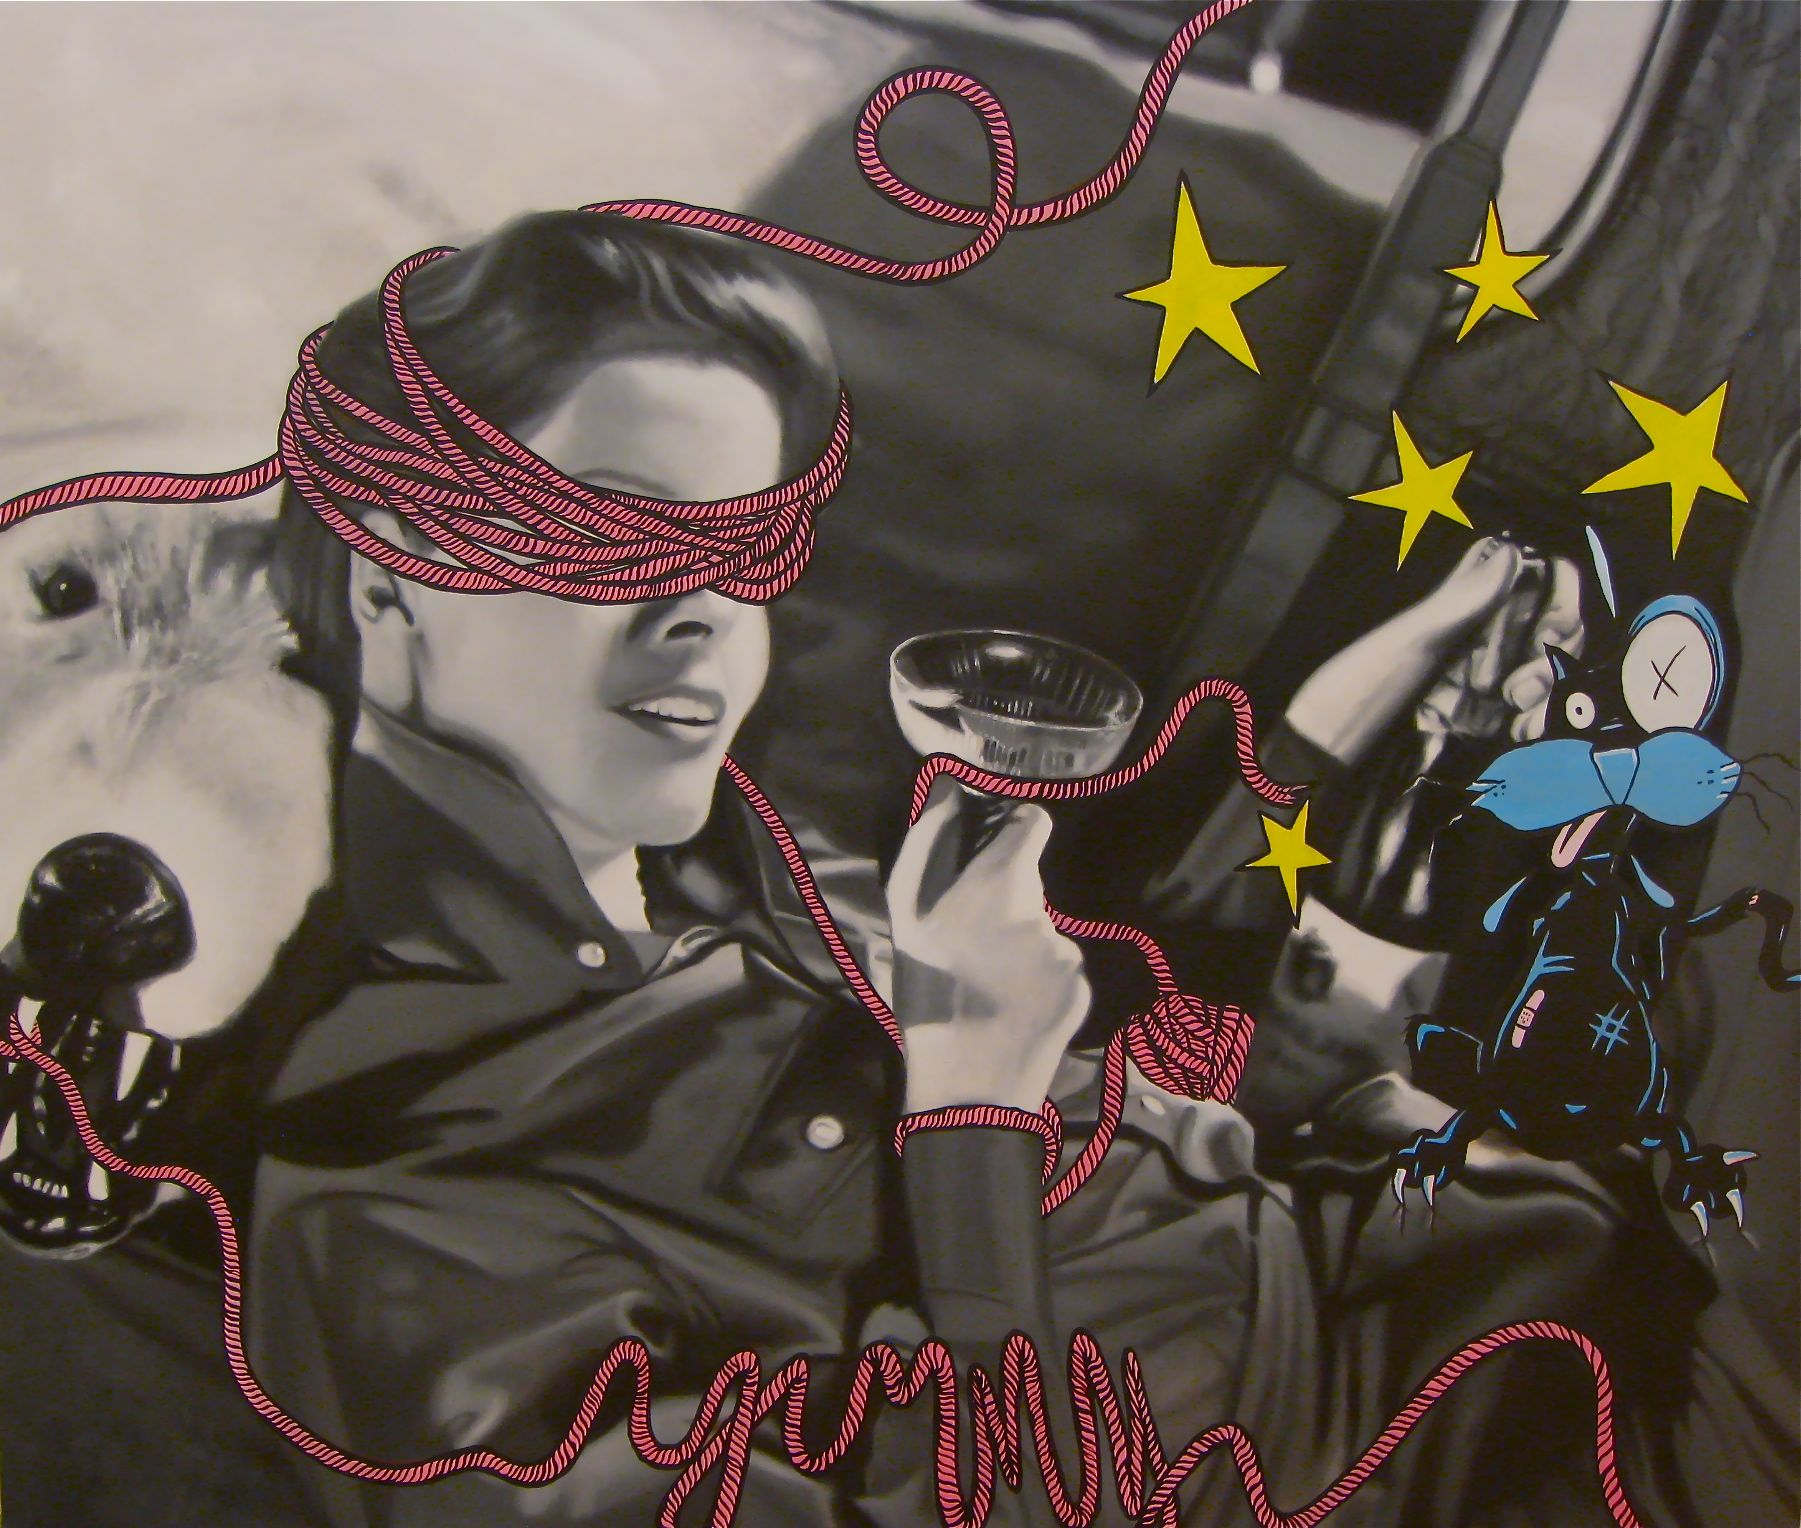 Bryant_Just One More Darling_2013_oil on canvas_30x40.jpg